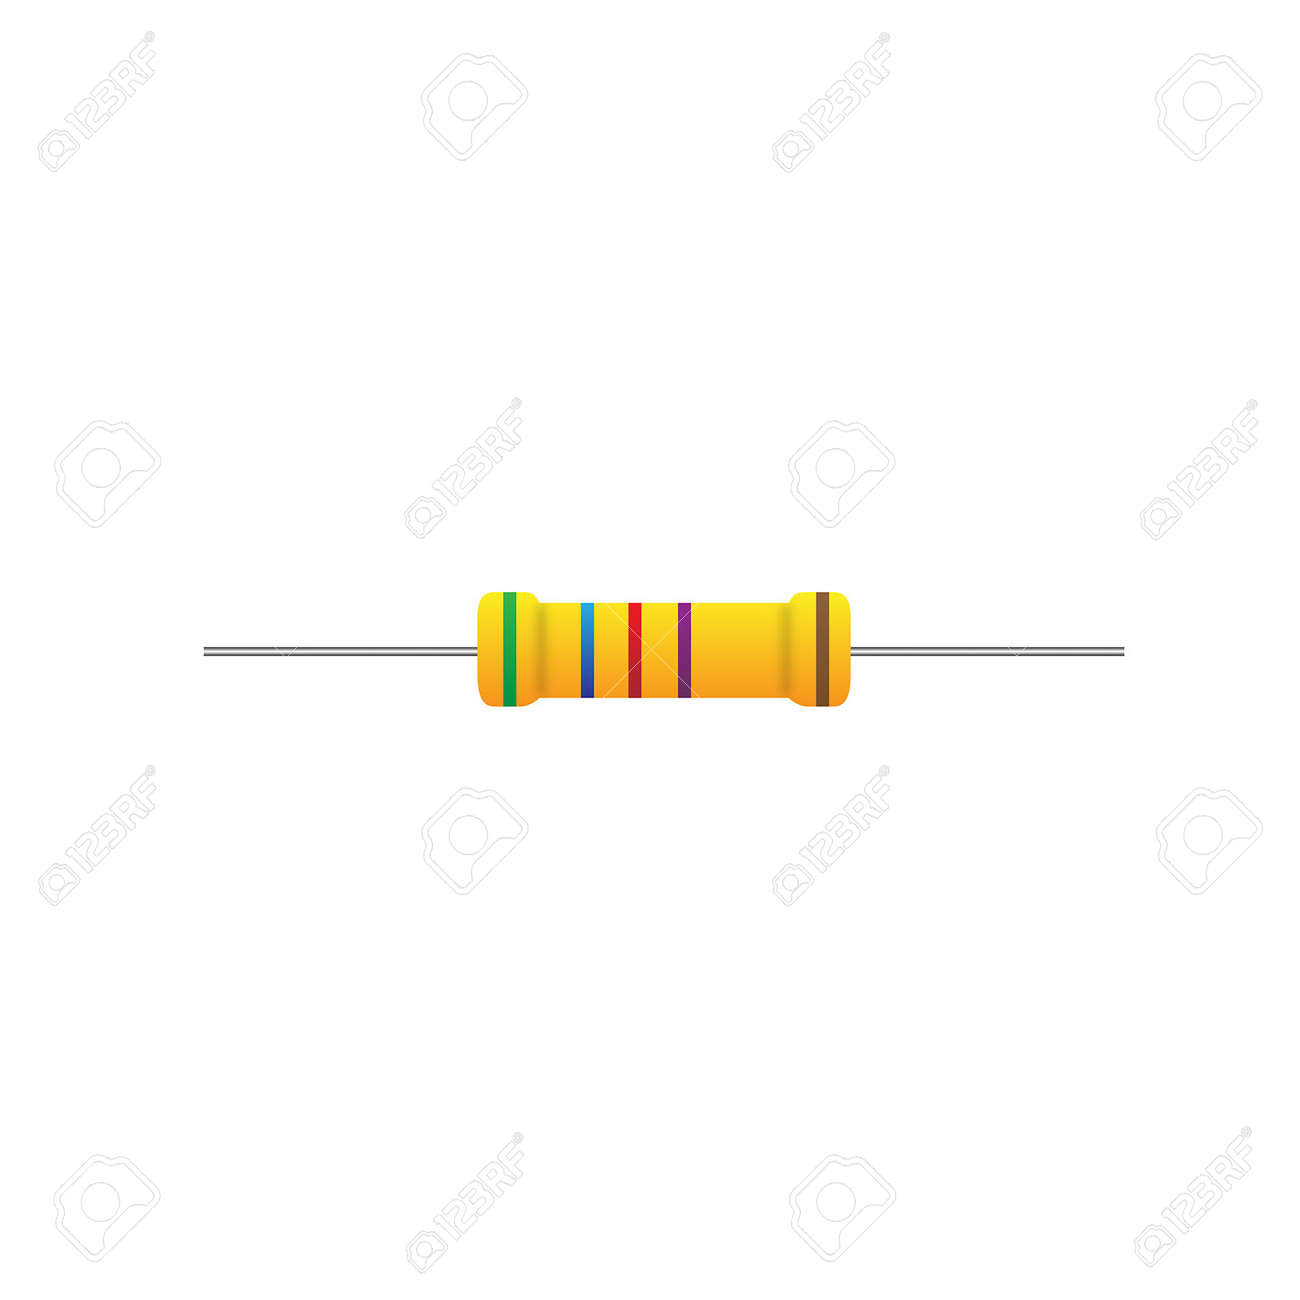 Resistor On A White Background Royalty Free Cliparts, Vectors, And ...